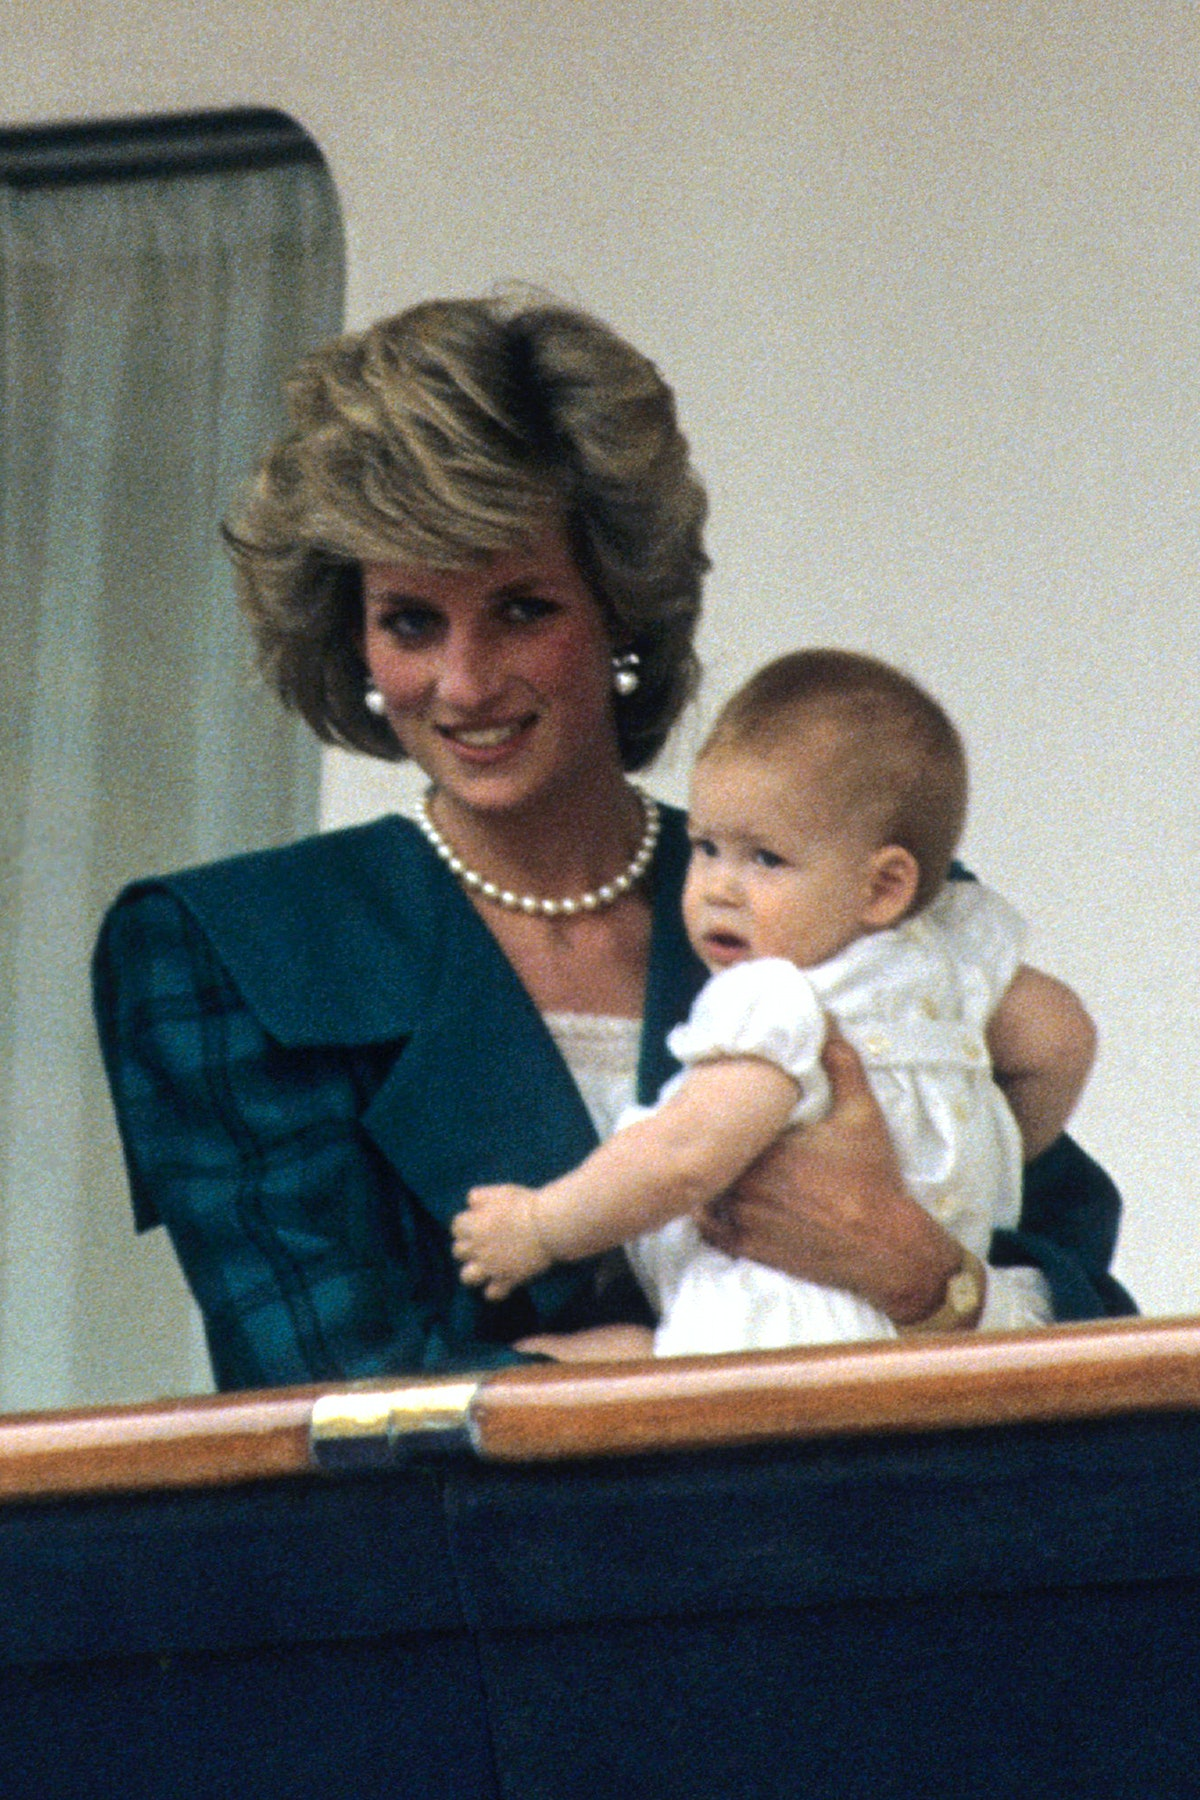 Prince Harry's tribute to Princess Diana in 'Hospital by the Hill' is an emotional memorial.